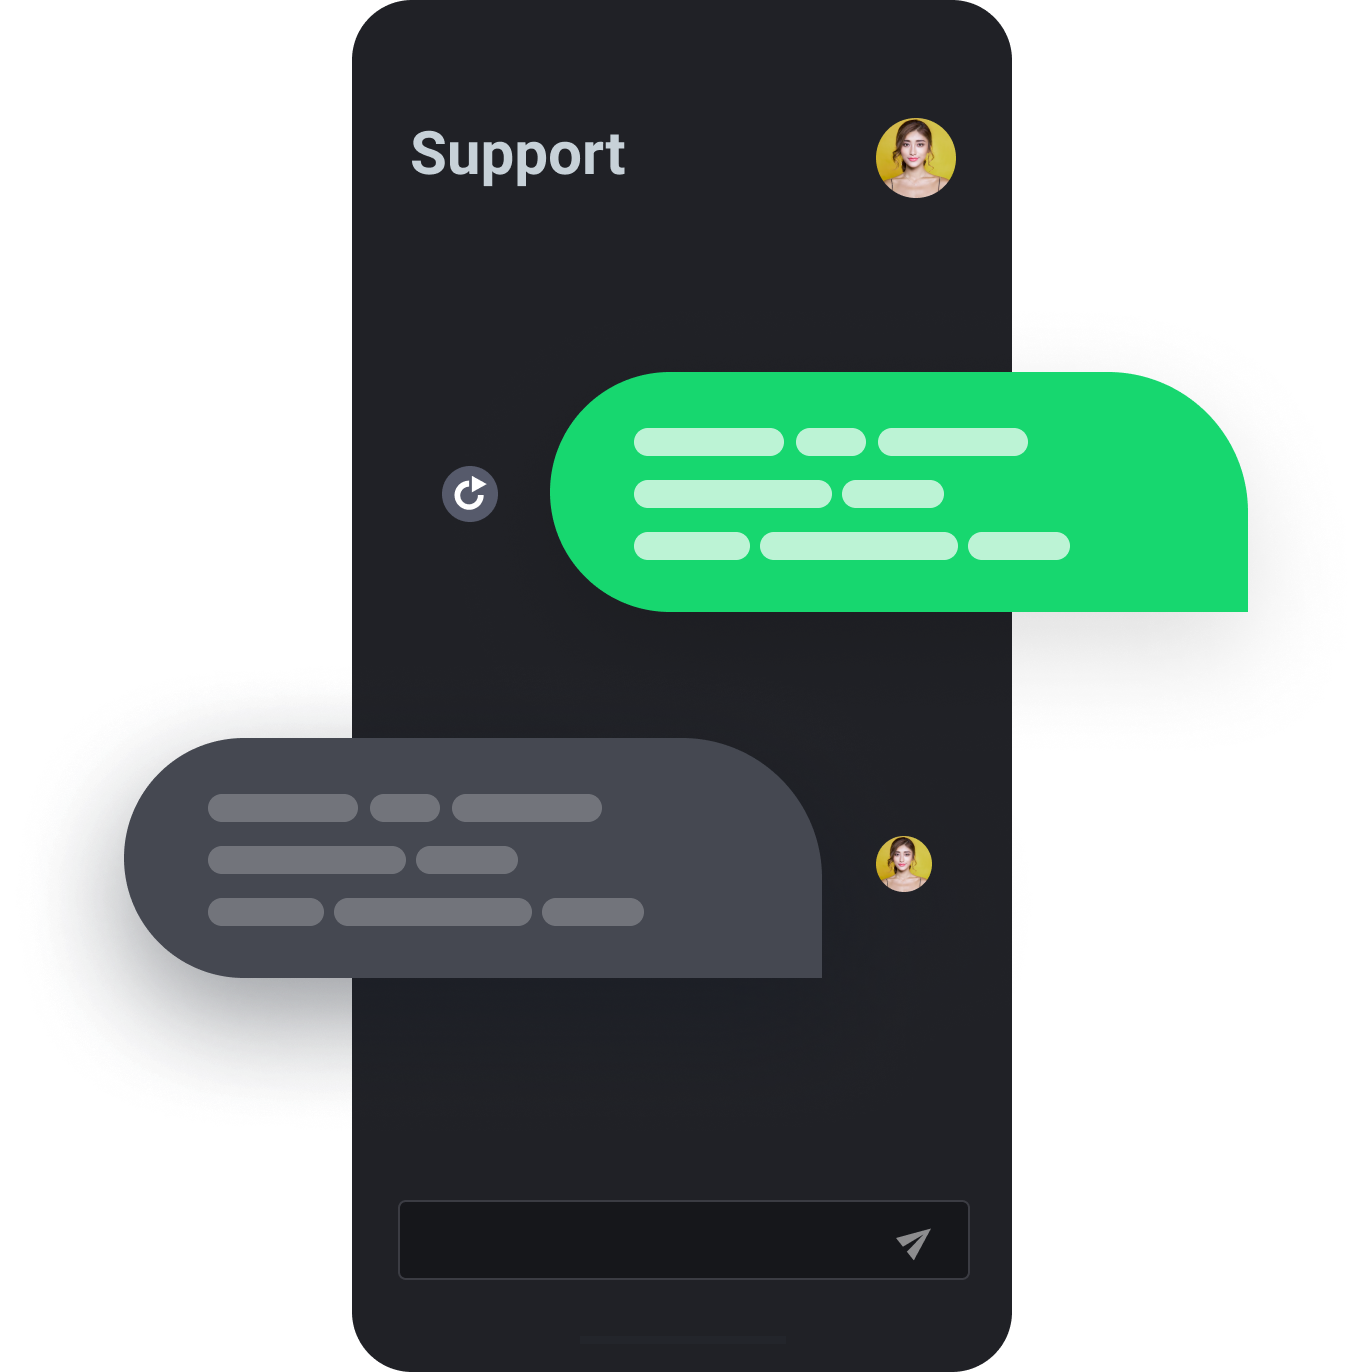 Mobile screen showing incard 24/7 support within app